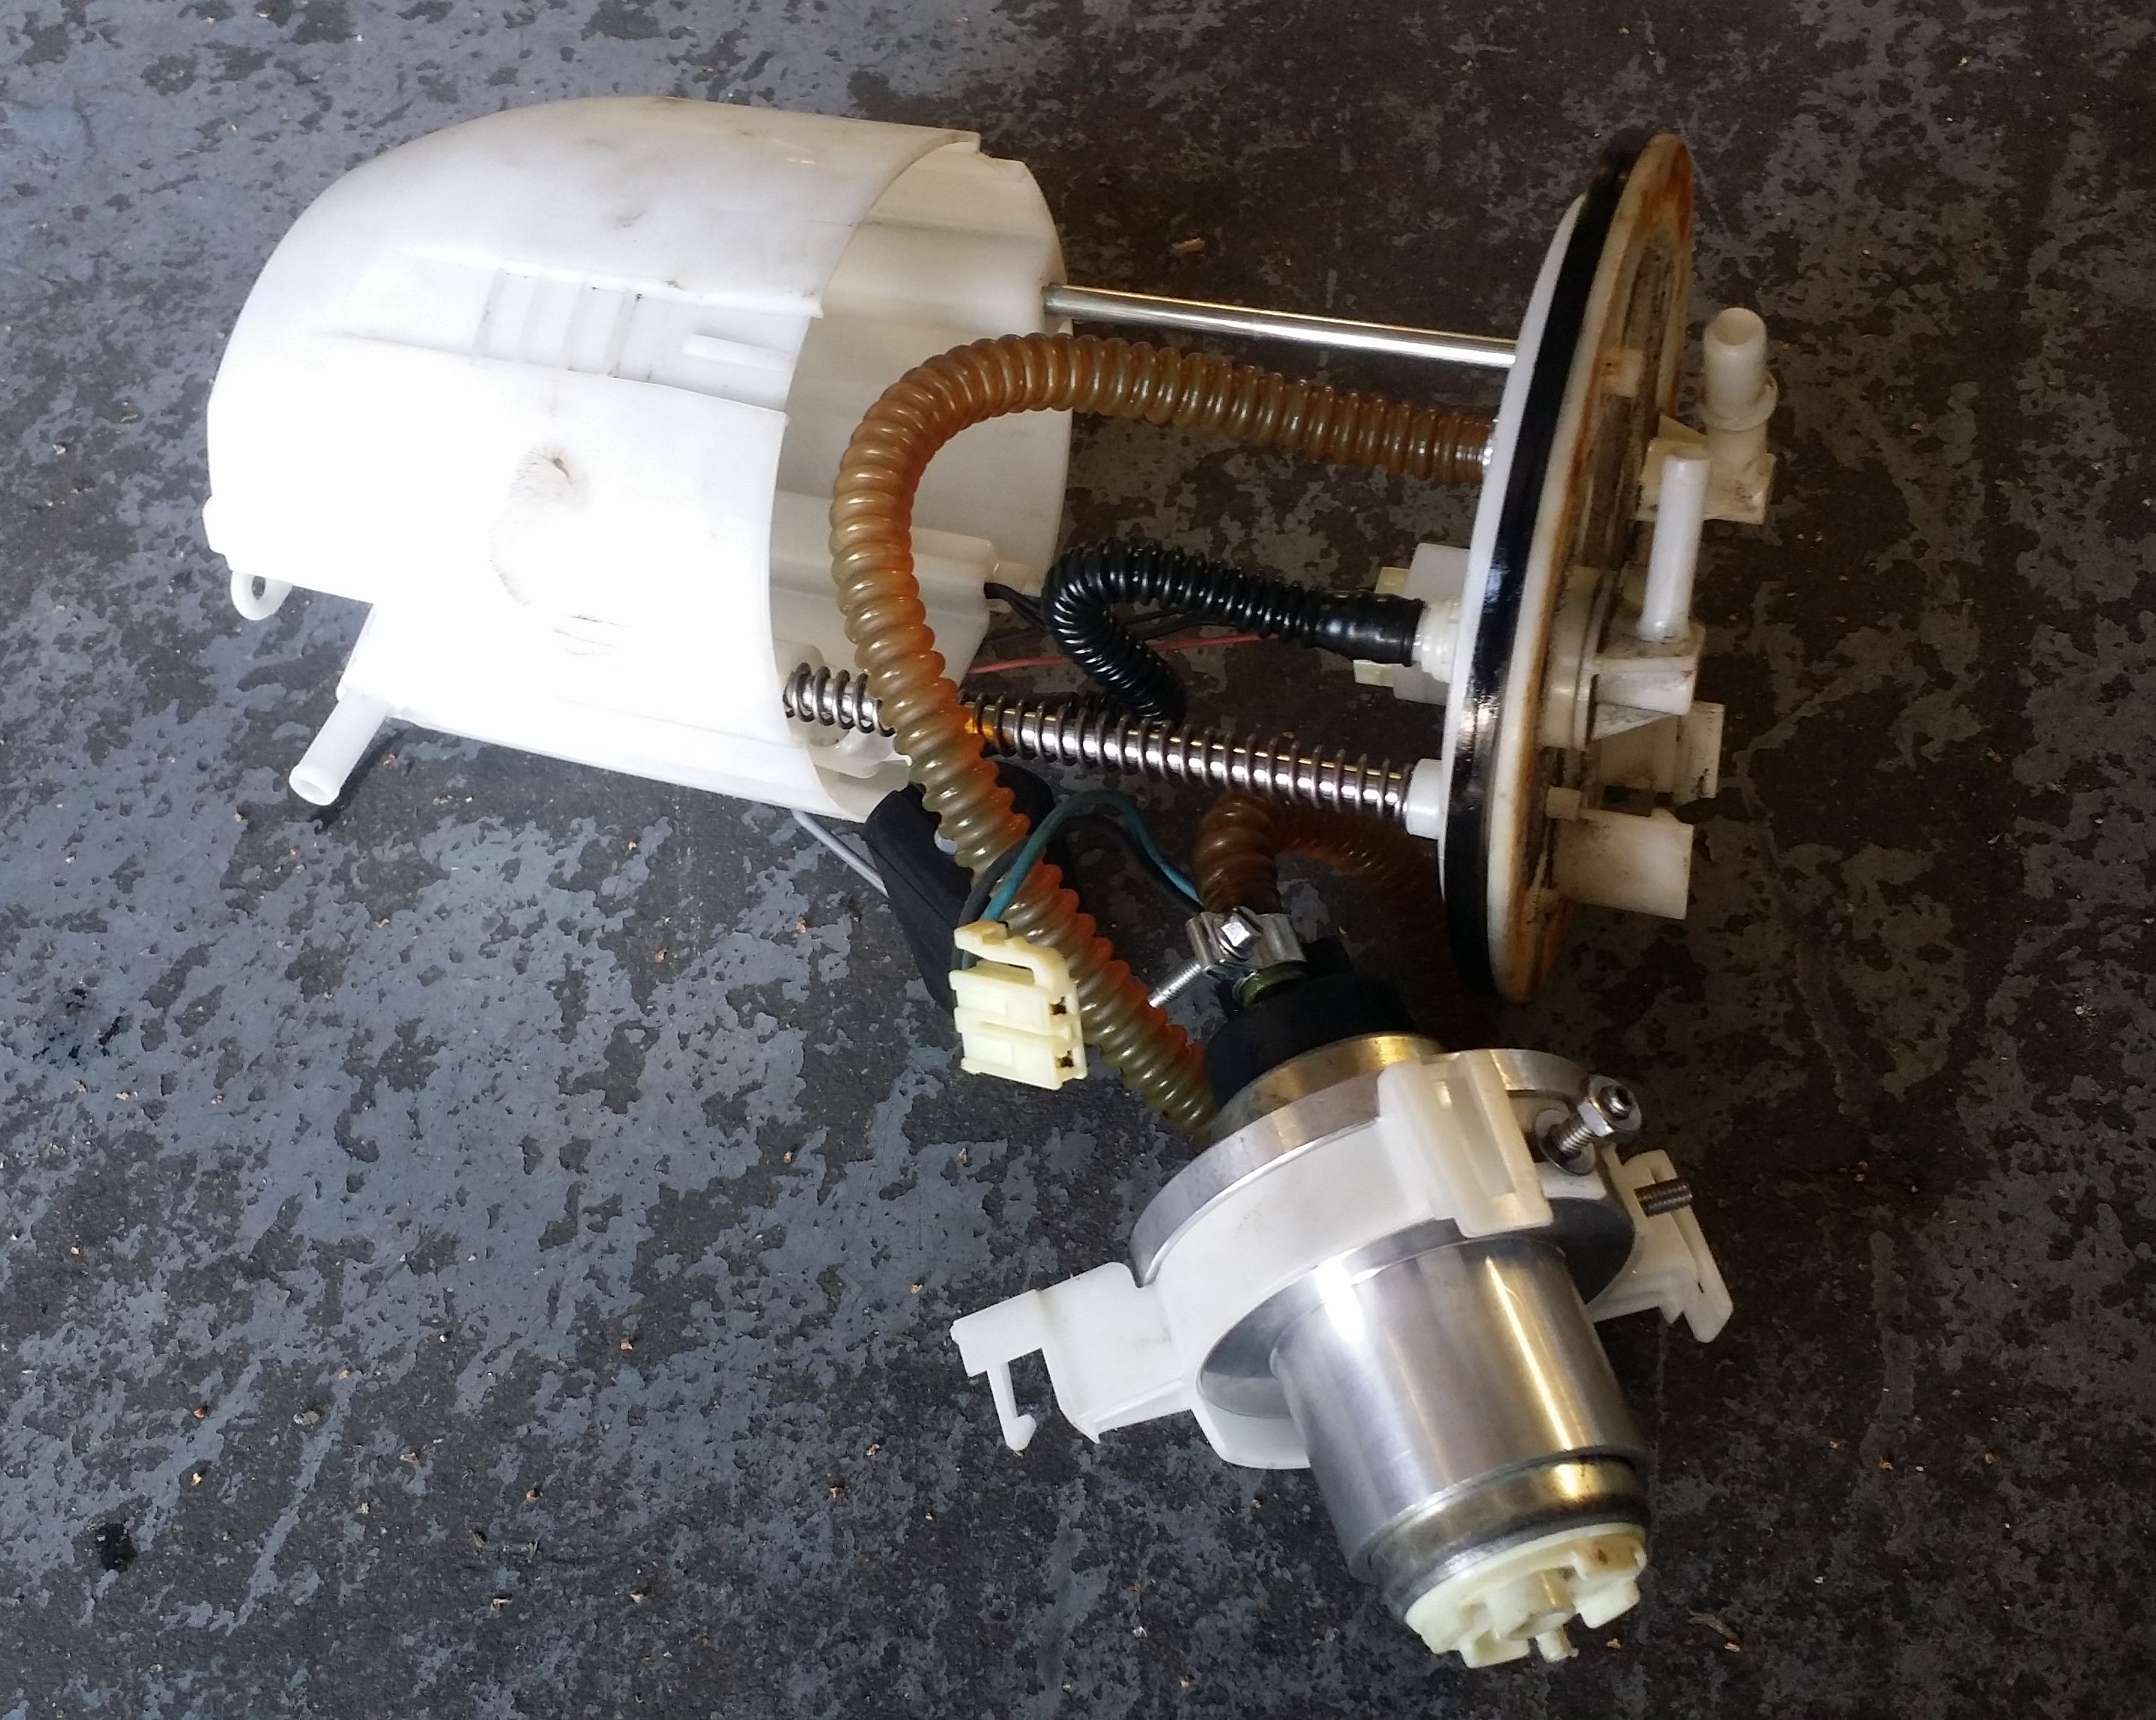 Aem E 85 Rated Fuel Pump For The Evo X 50 1220 Road Race Engineering Wrx Filter In Addition To Running No Pick Up Sock Car That This Came Out Of Had Under Hood Either He Was On His Second Motor After